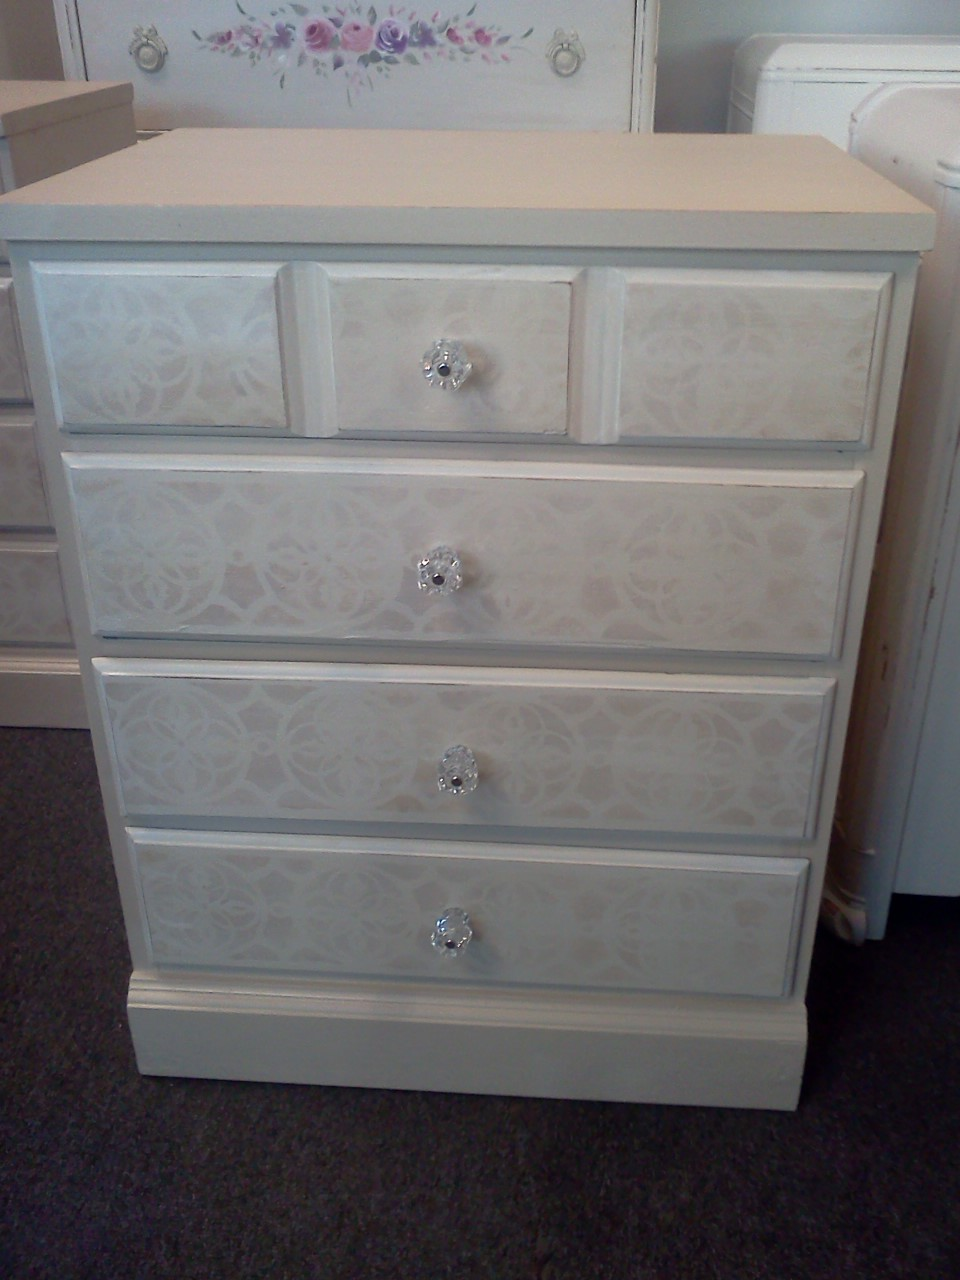 Pair Of Vintage Night Stands Painted Beige With Off White Drawers And A  Handpainted Faded Background On The Drawers. New Glass Knobs Have Been  Added.